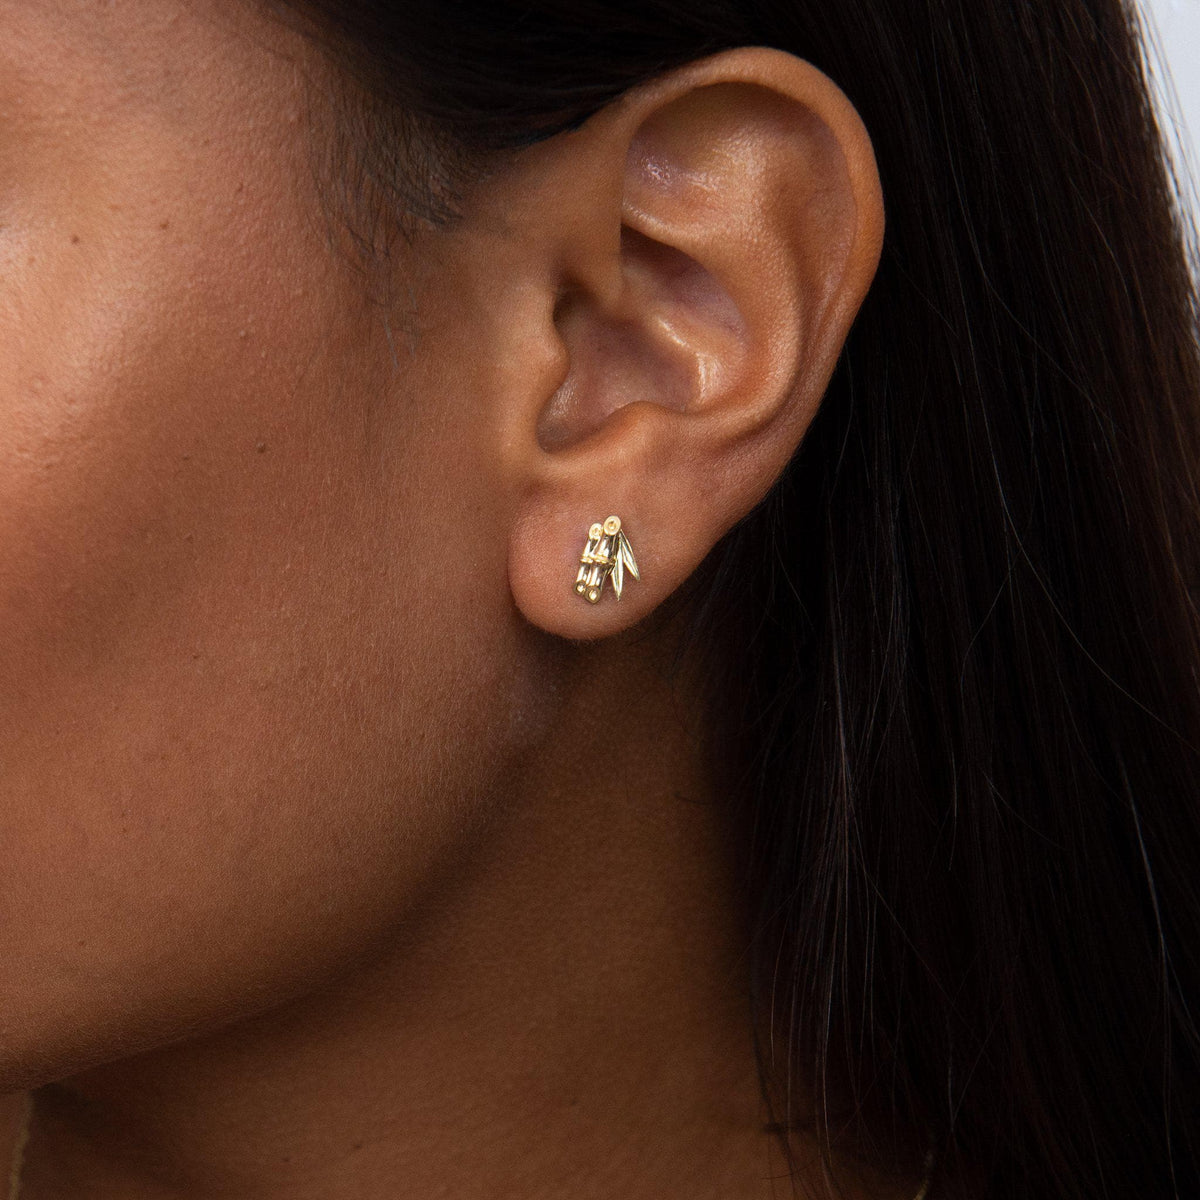 Bamboo Forest Stud Earrings in Two Tone Gold on Model